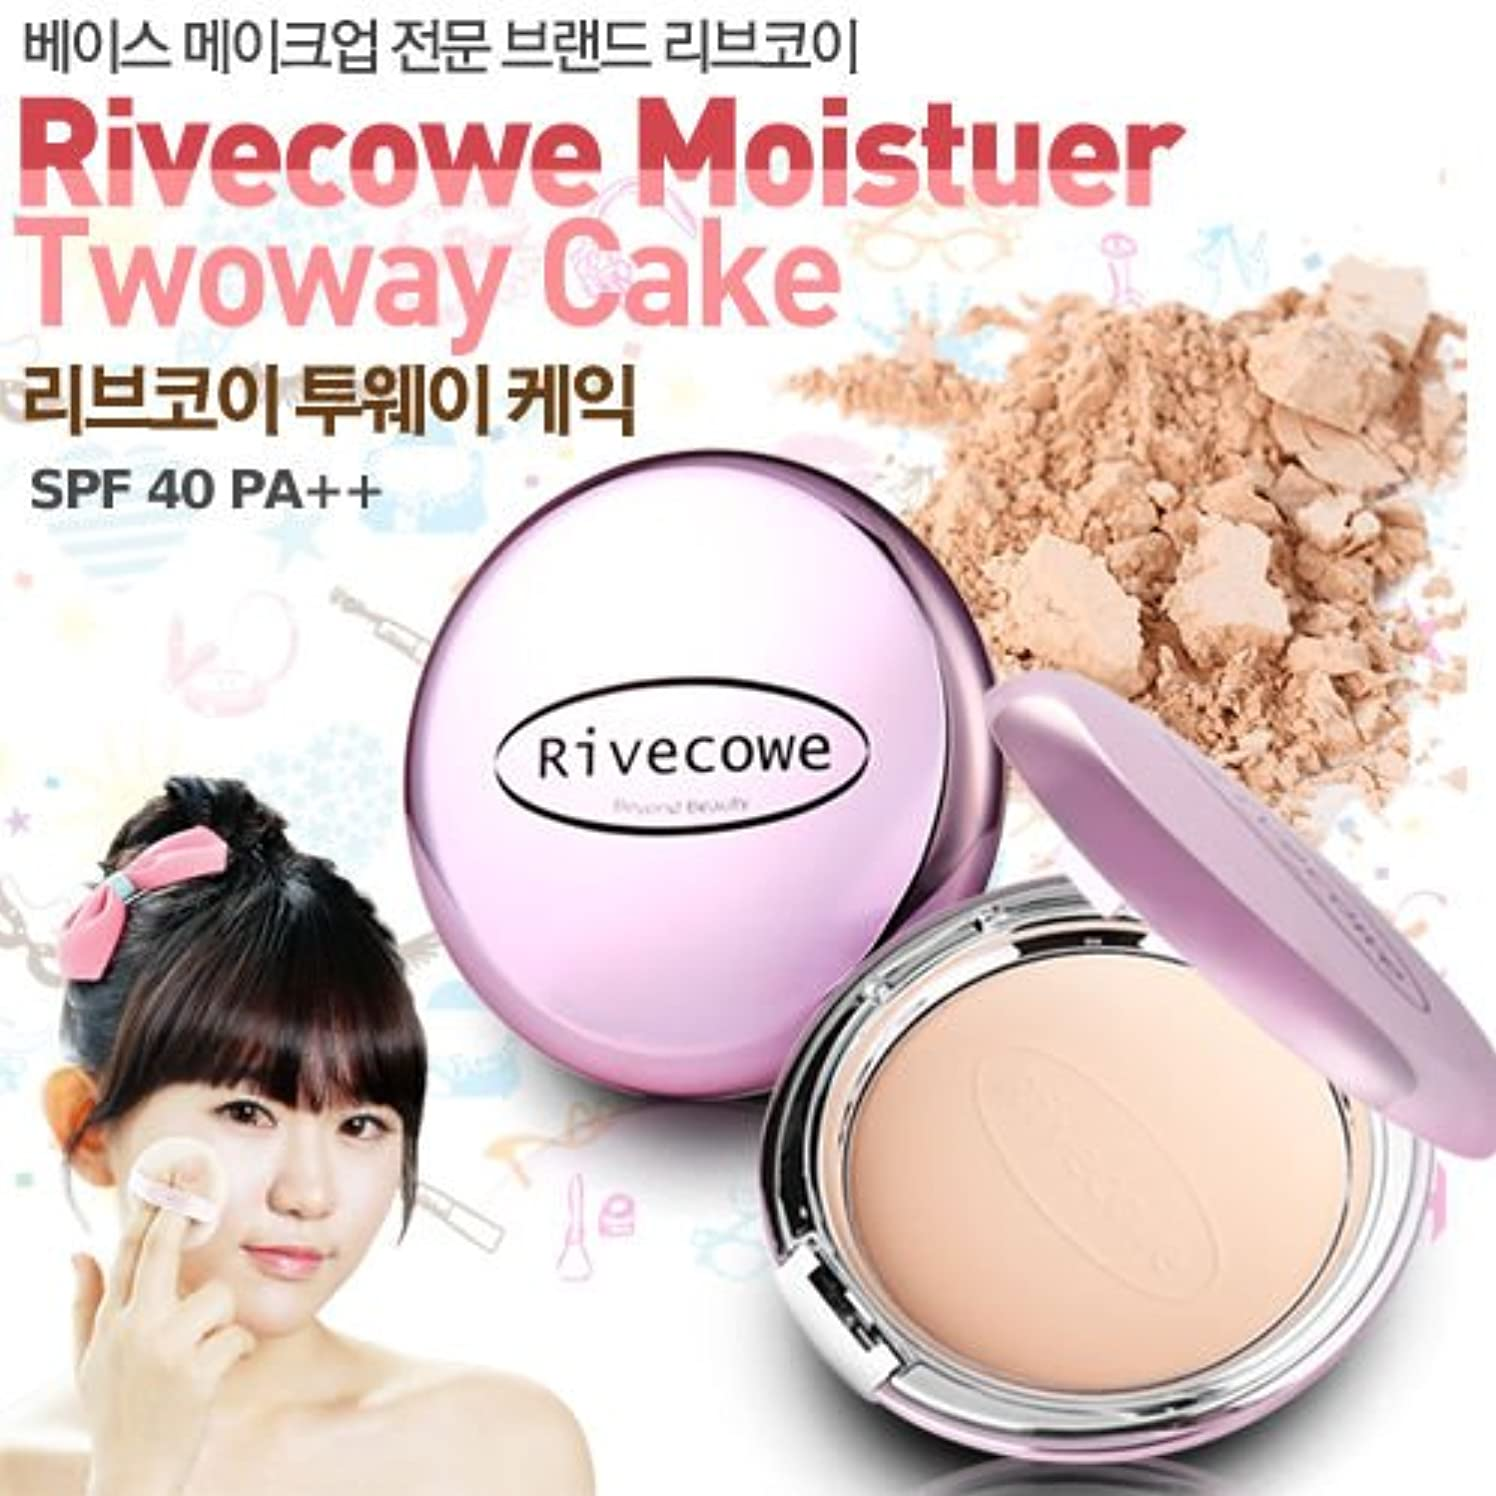 蒸気ステージ電池Rivecowe Moisture Twoway Cake (Foundation + Powder) SPF40PA++ 12g (No. 21 Natural Beige) [並行輸入品]